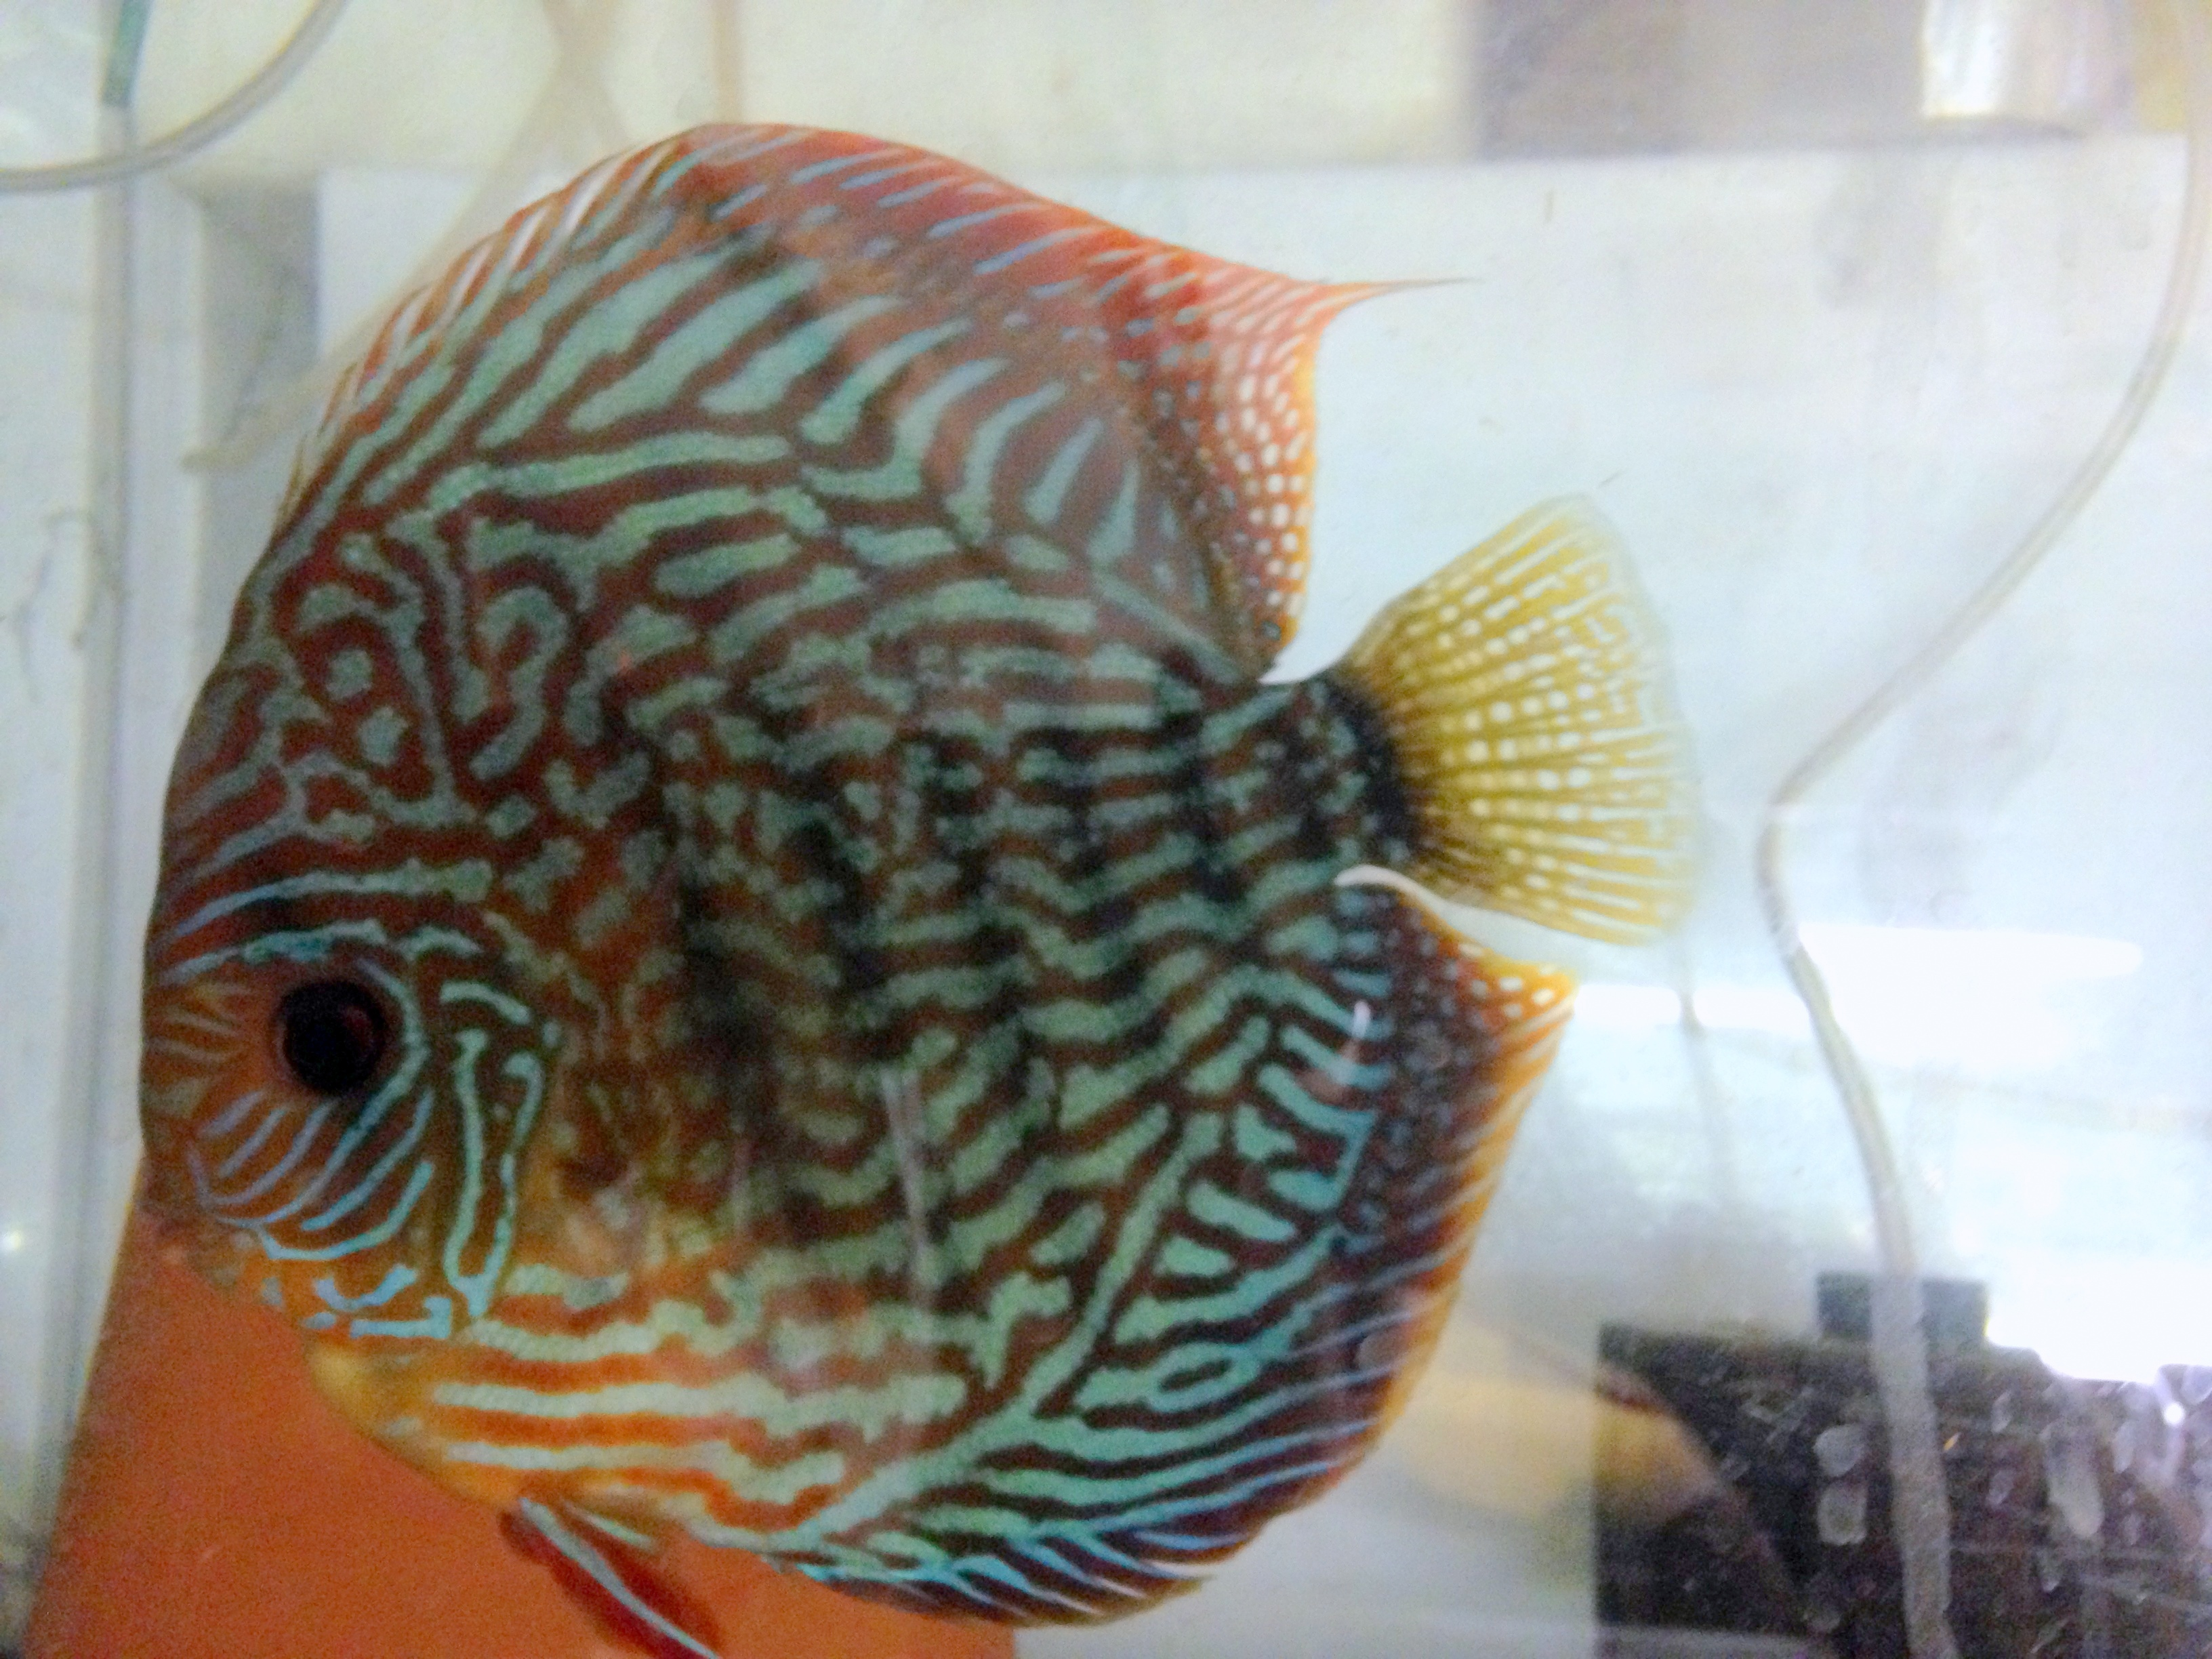 Fish aquarium utah -  Aquarium Society Can Anyone Help Me Figure Out How To Tag It So People Can Search Gslas And Have It Come Up Like The Site And Post Fish Stuff And